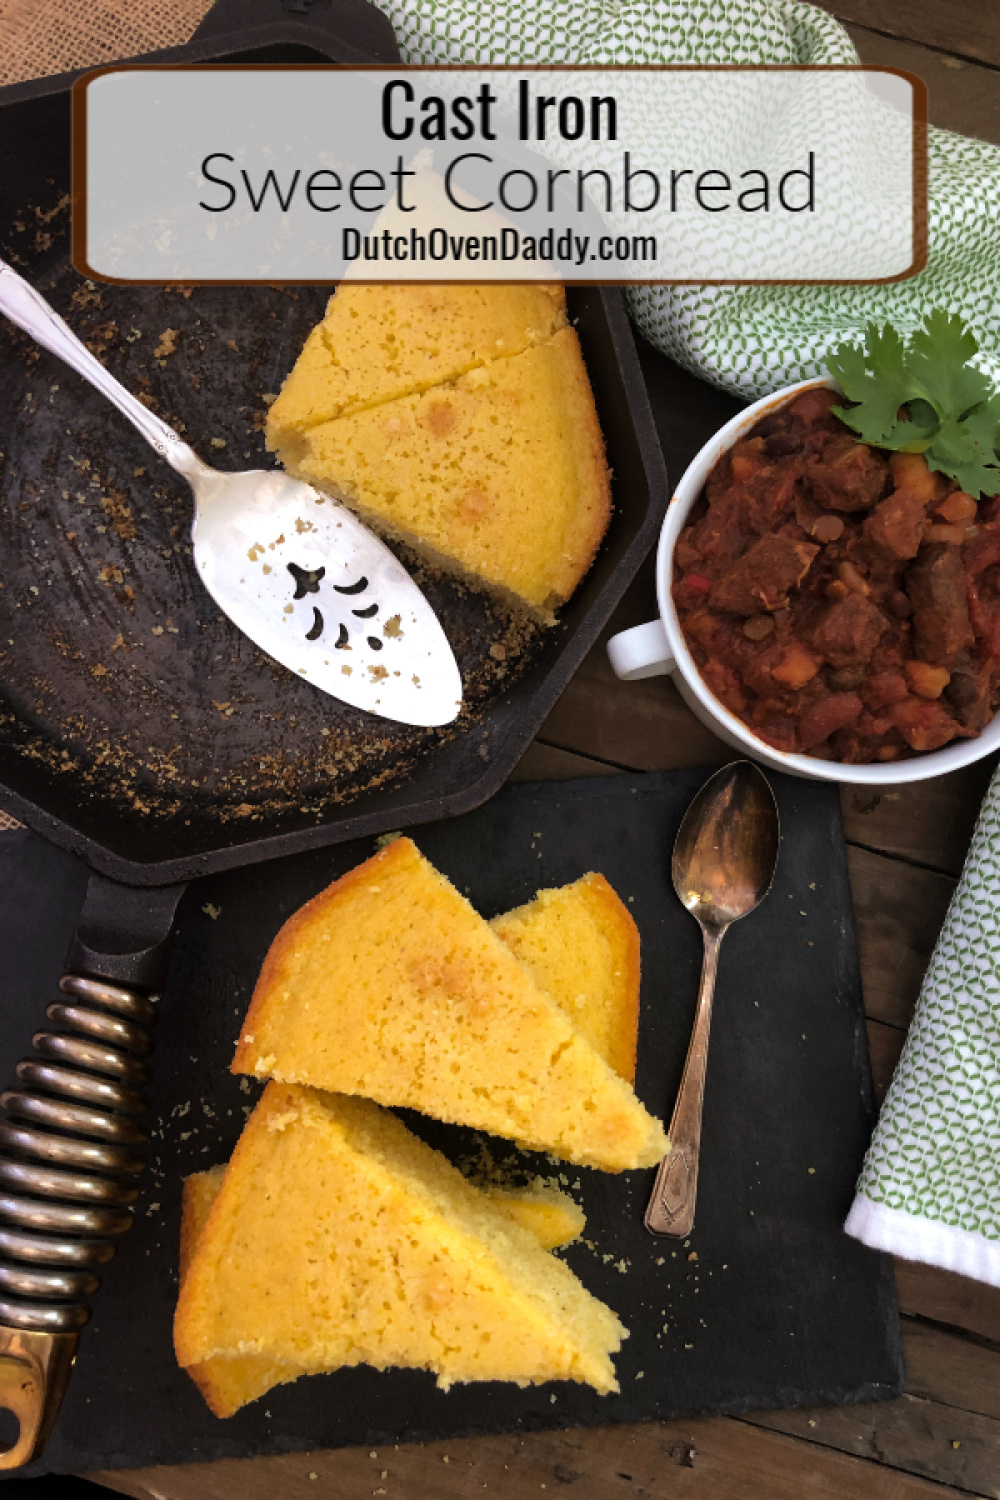 Sweet Cornbread sliced, partially on a platter and in the skillet with a side of chili.